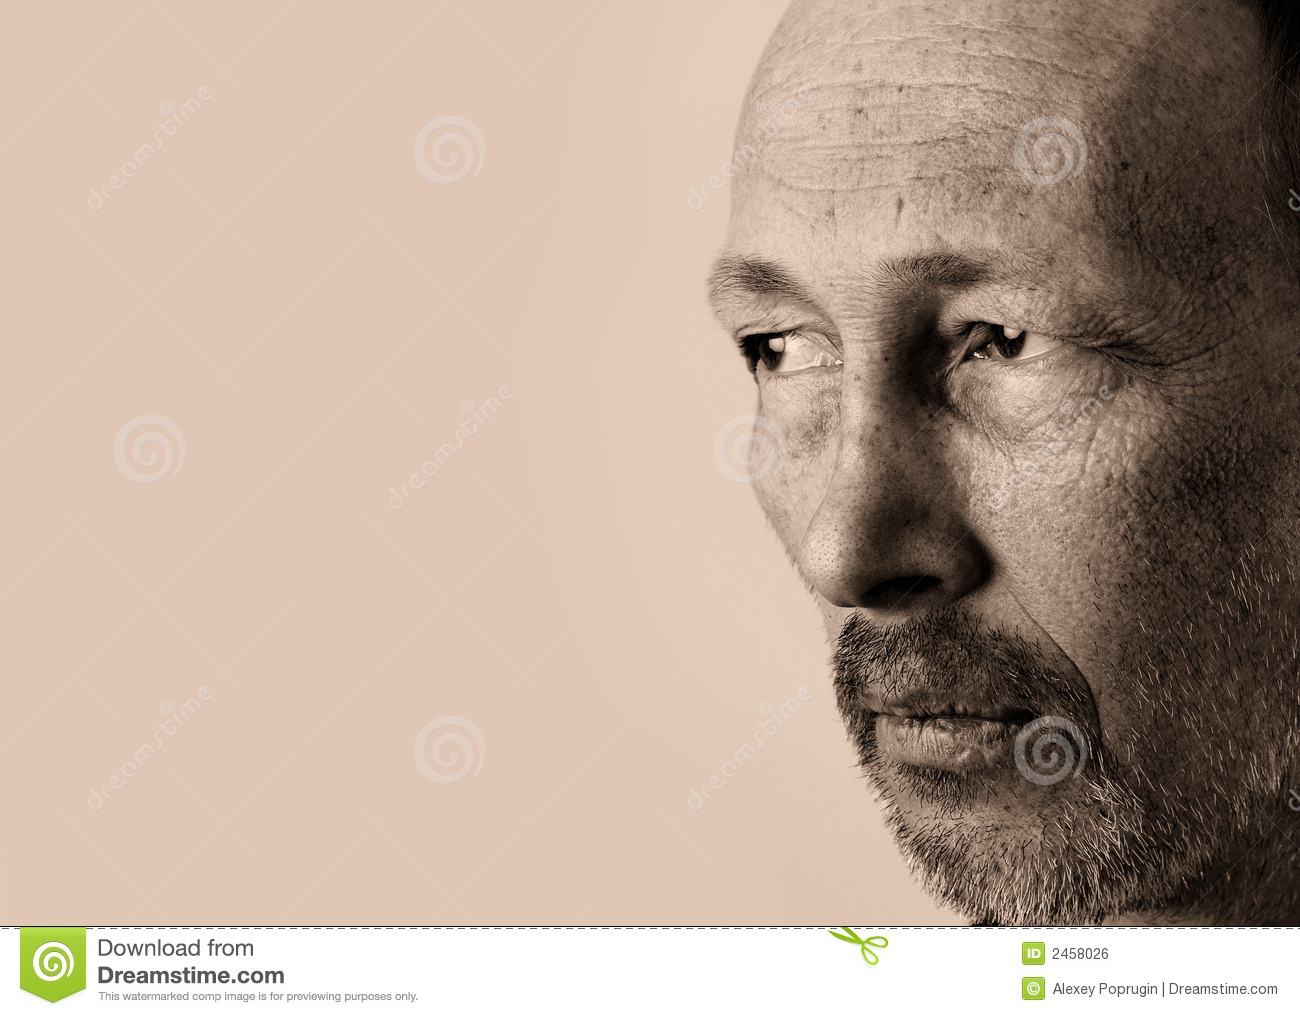 Thinking Man Royalty Free Stock Image - Image: 2458026